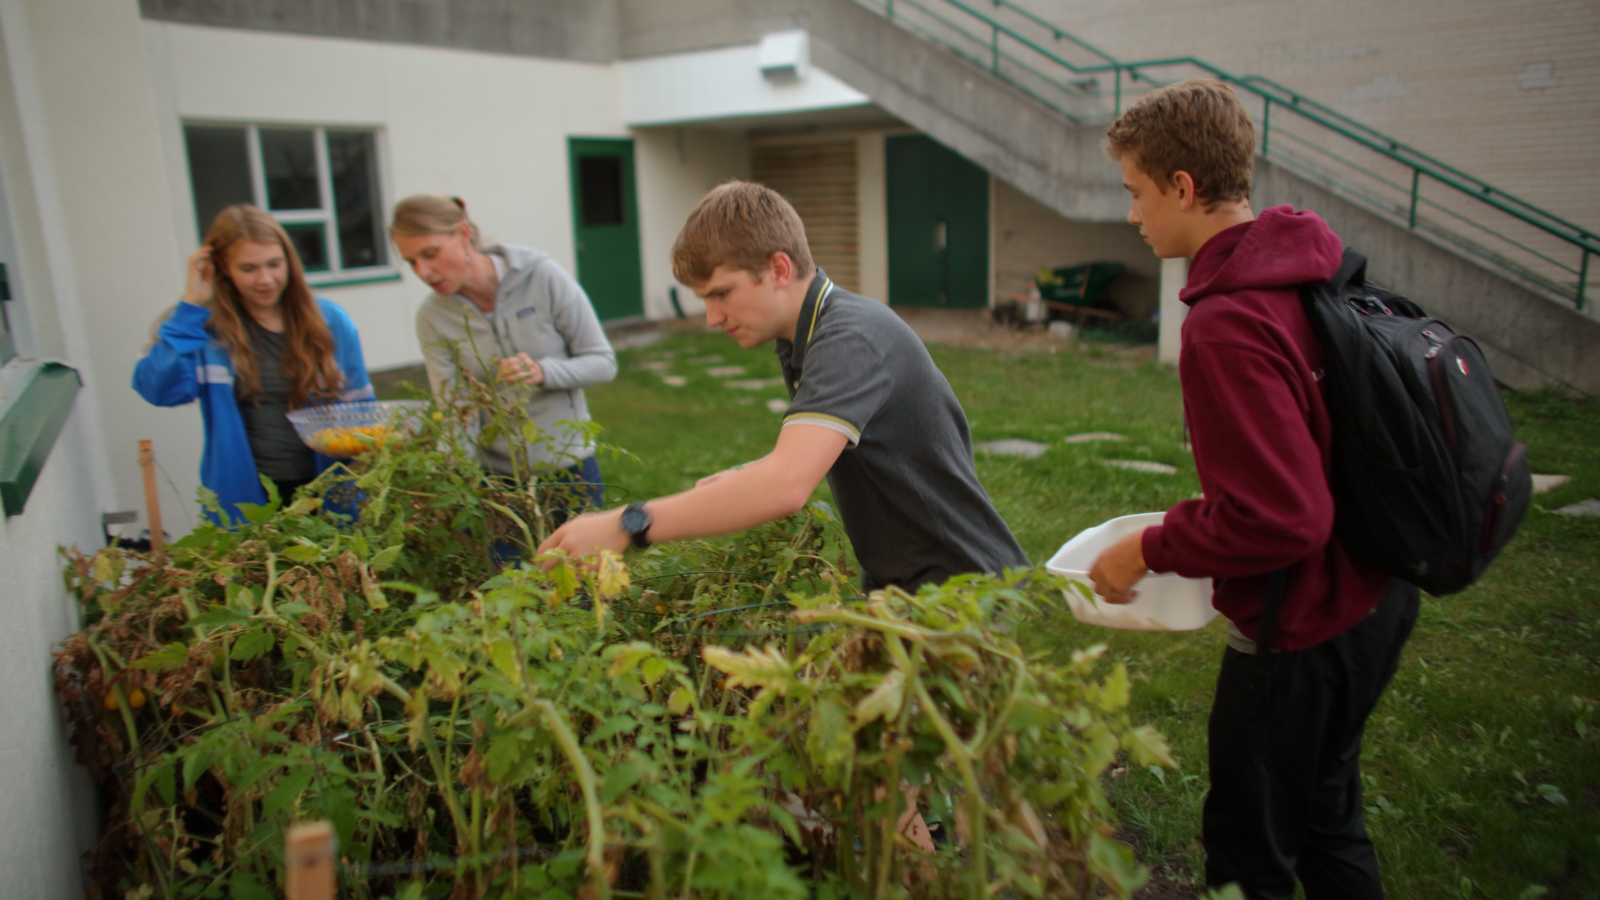 Three students and a teacher lean over a raised garden bed to collect tomatoes.